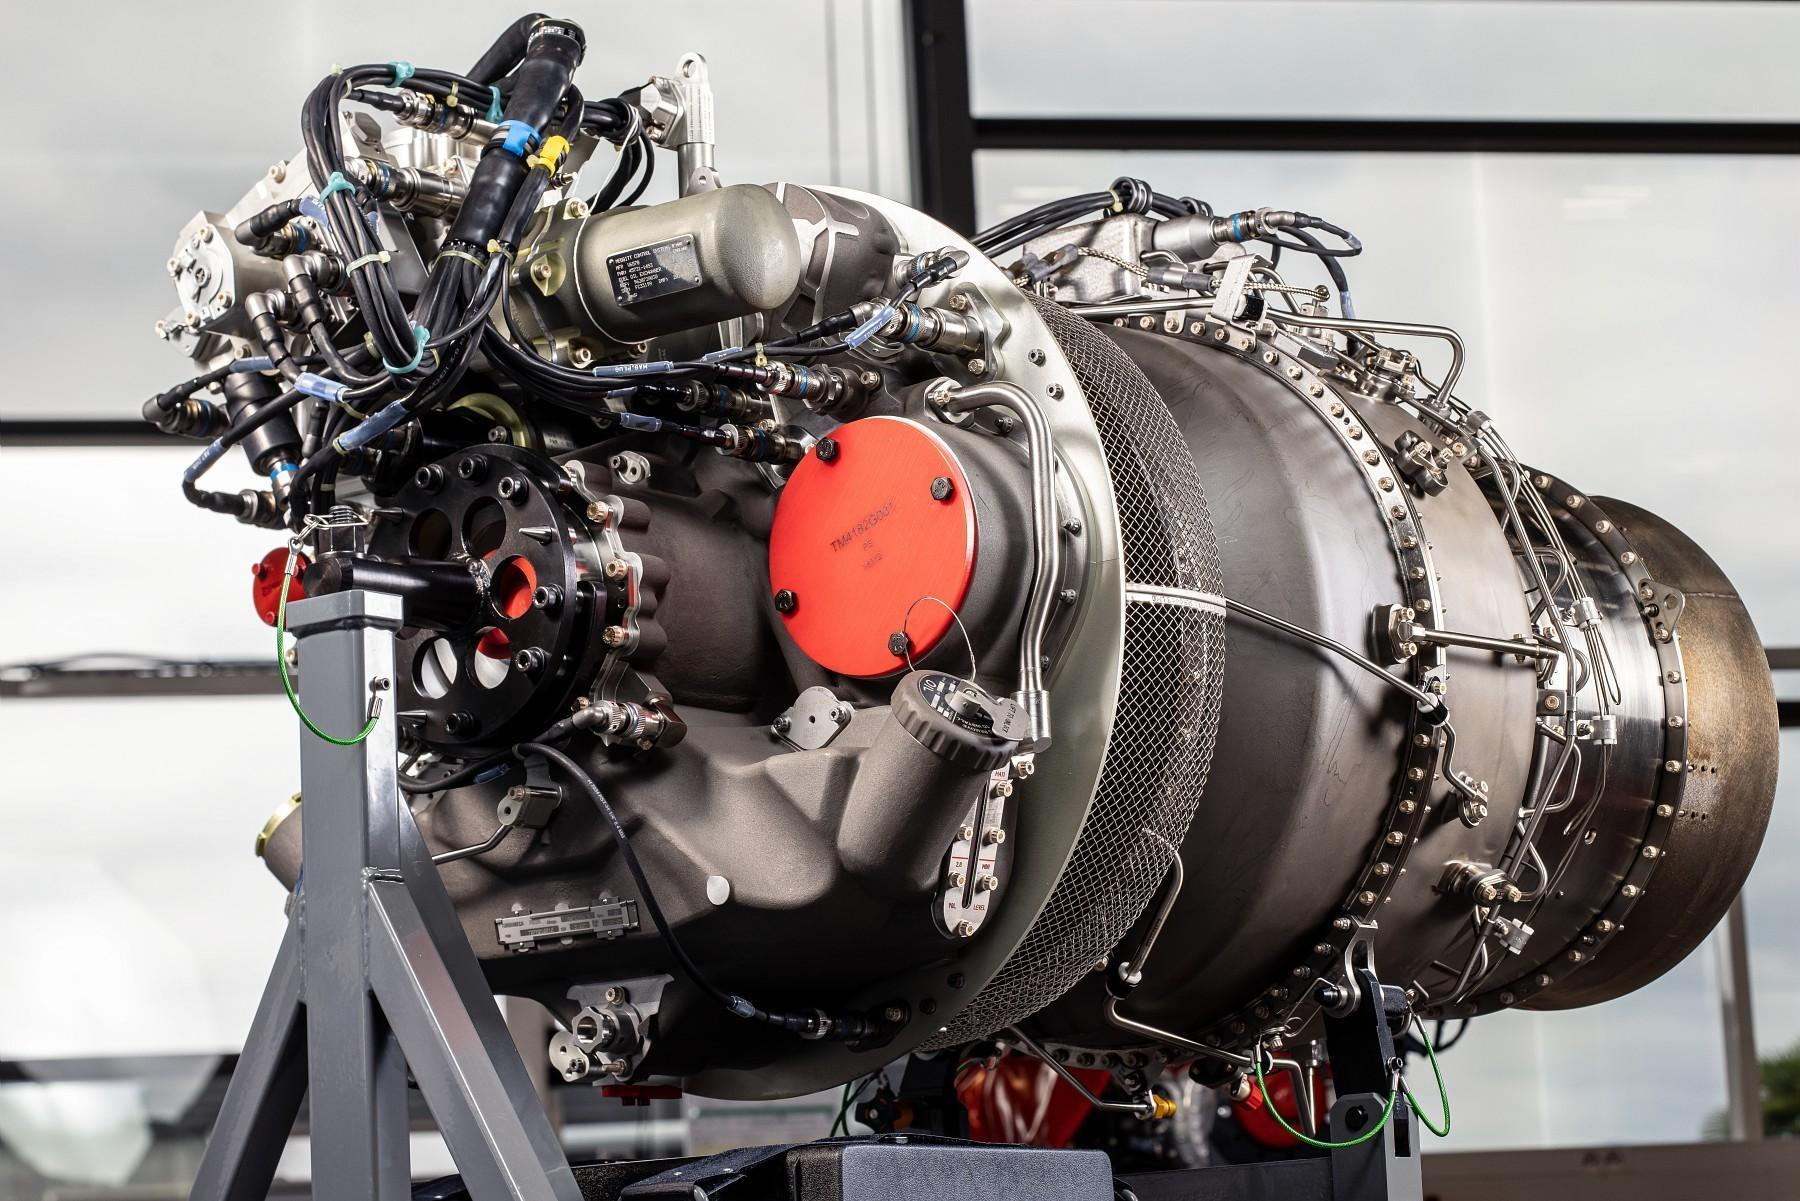 Piaggio Aerospace and France's Safran Helicopter Engines have inked a Letter of Intent to cooperate on the production of Ardiden 3 engines